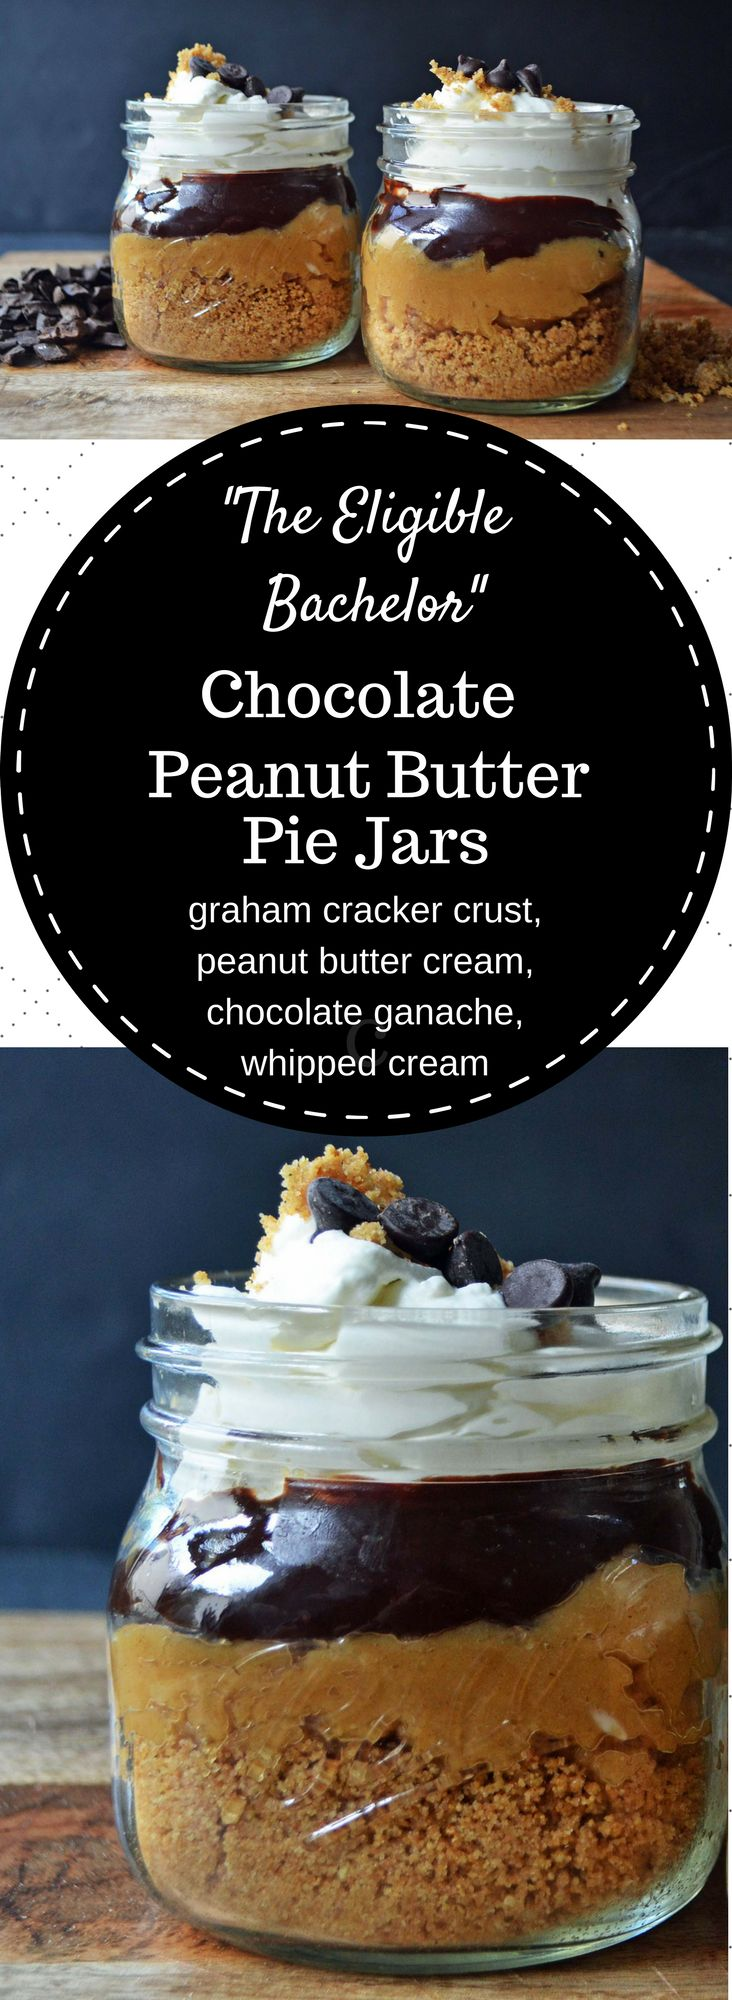 The Eligible Bachelor Chocolate Peanut Butter Pie Jars are made by layering graham cracker crust, sweet peanut butter cream, rich chocolate ganache, and homemade whipped cream. It's a Chocolate Peanut Butter Lover's Dream!